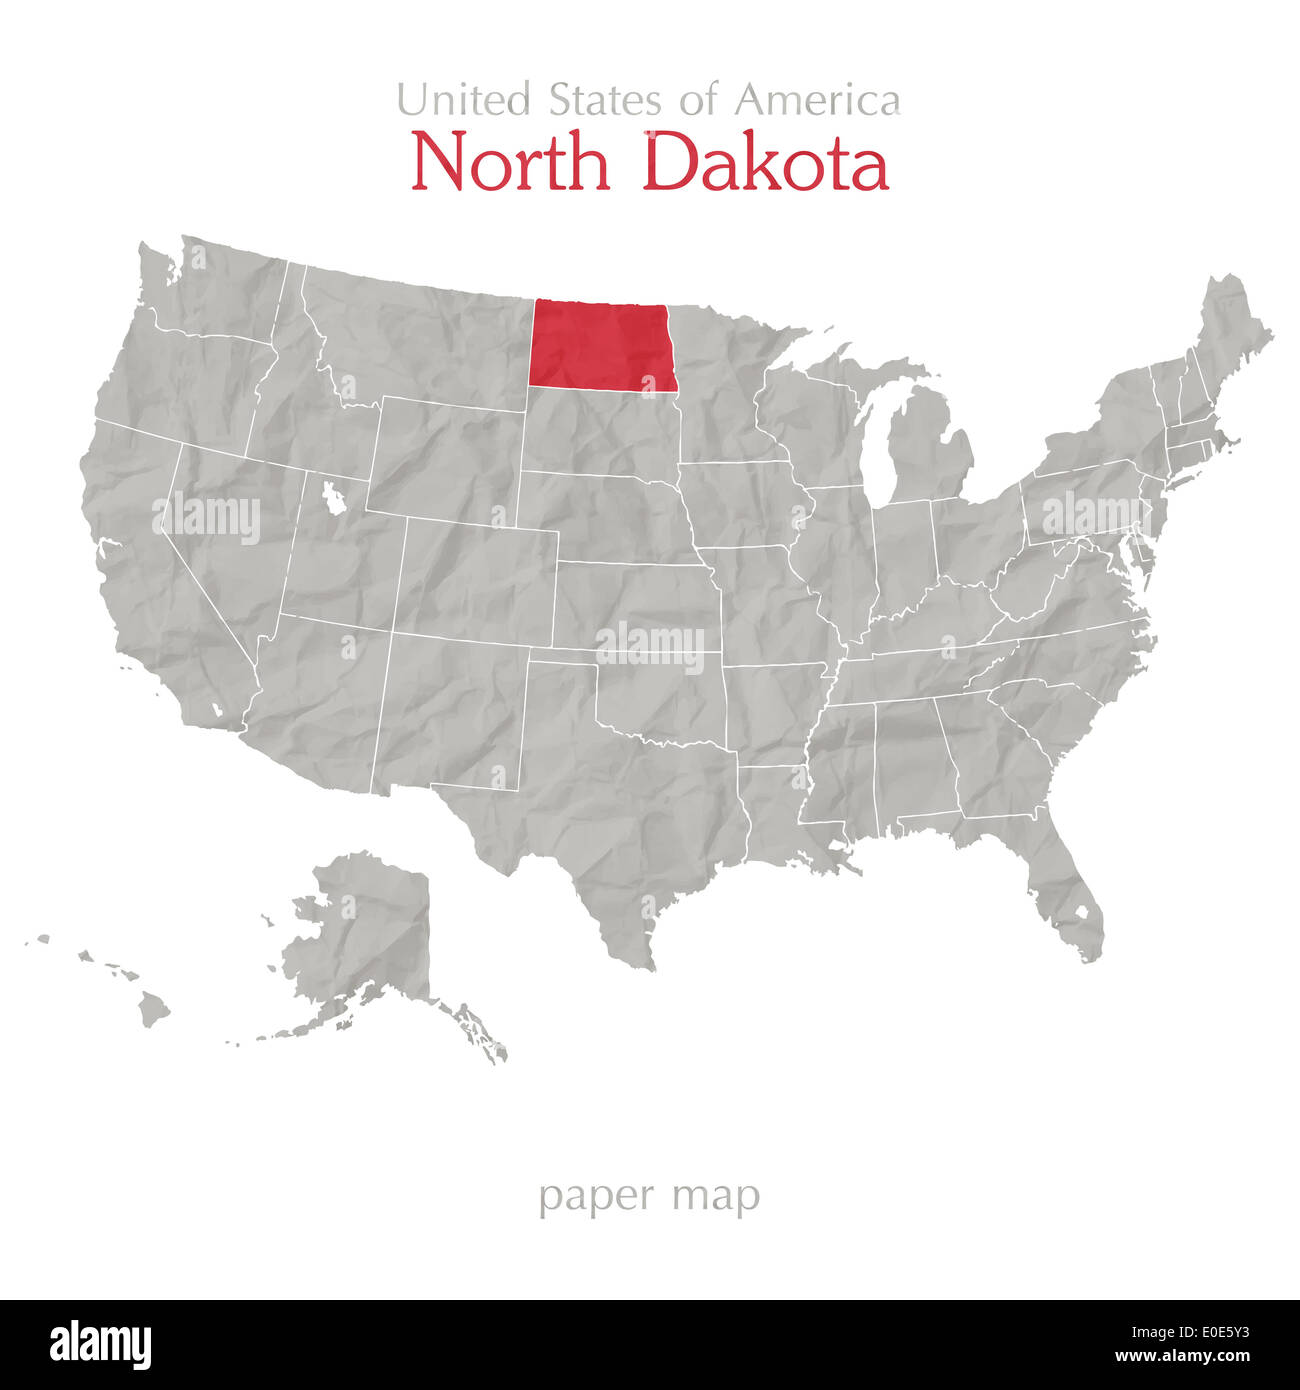 north dakota in usa map United States Of America Map And North Dakota Territory Isolated north dakota in usa map